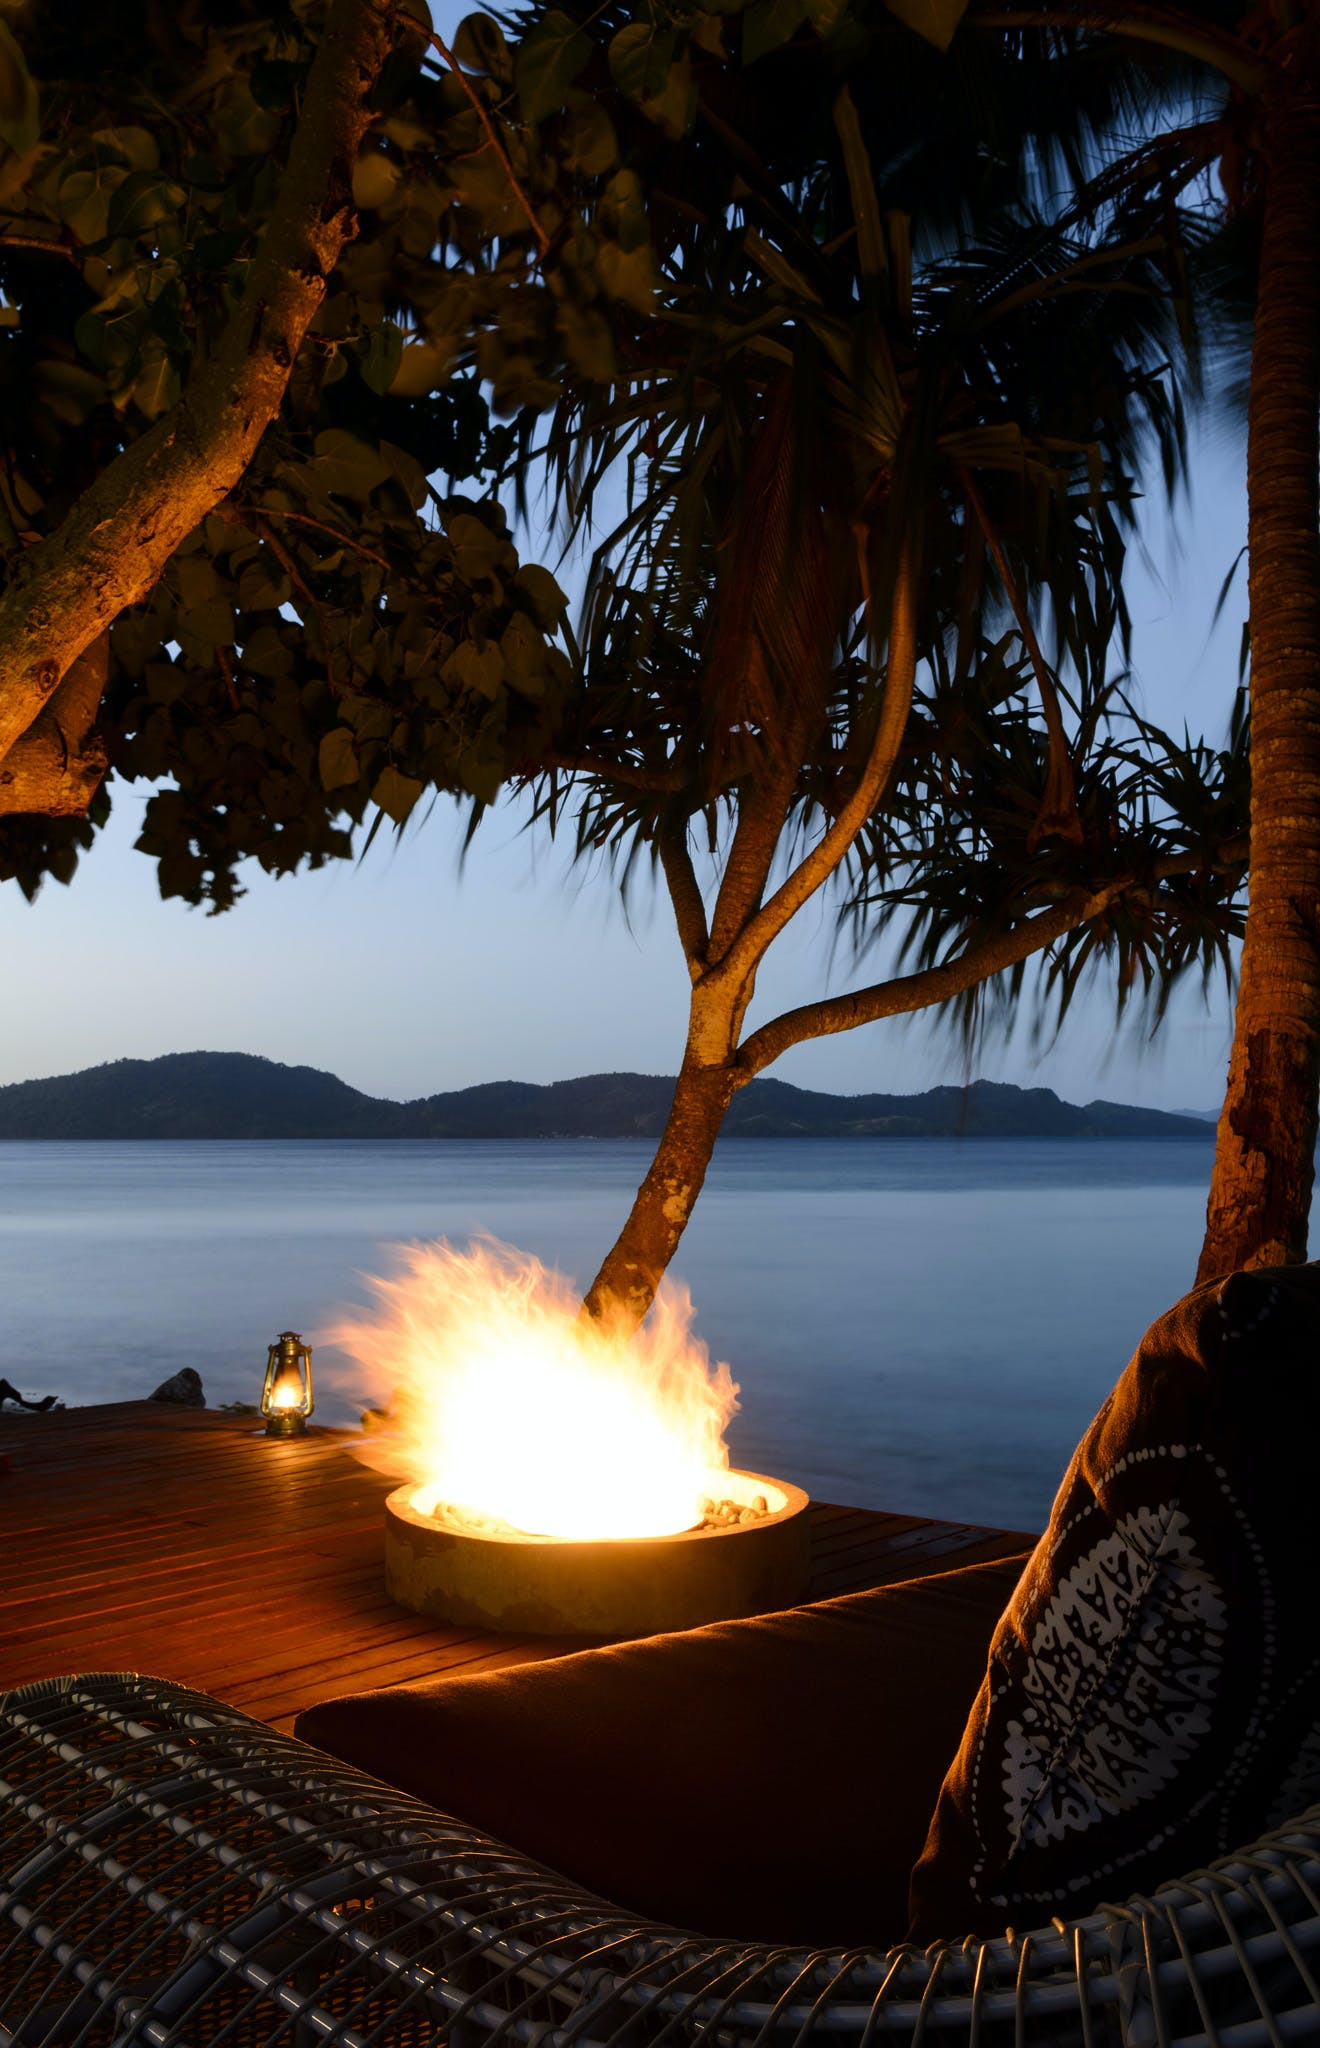 Dining on the Fire pit deck at The Remote Resort Fiji Islands